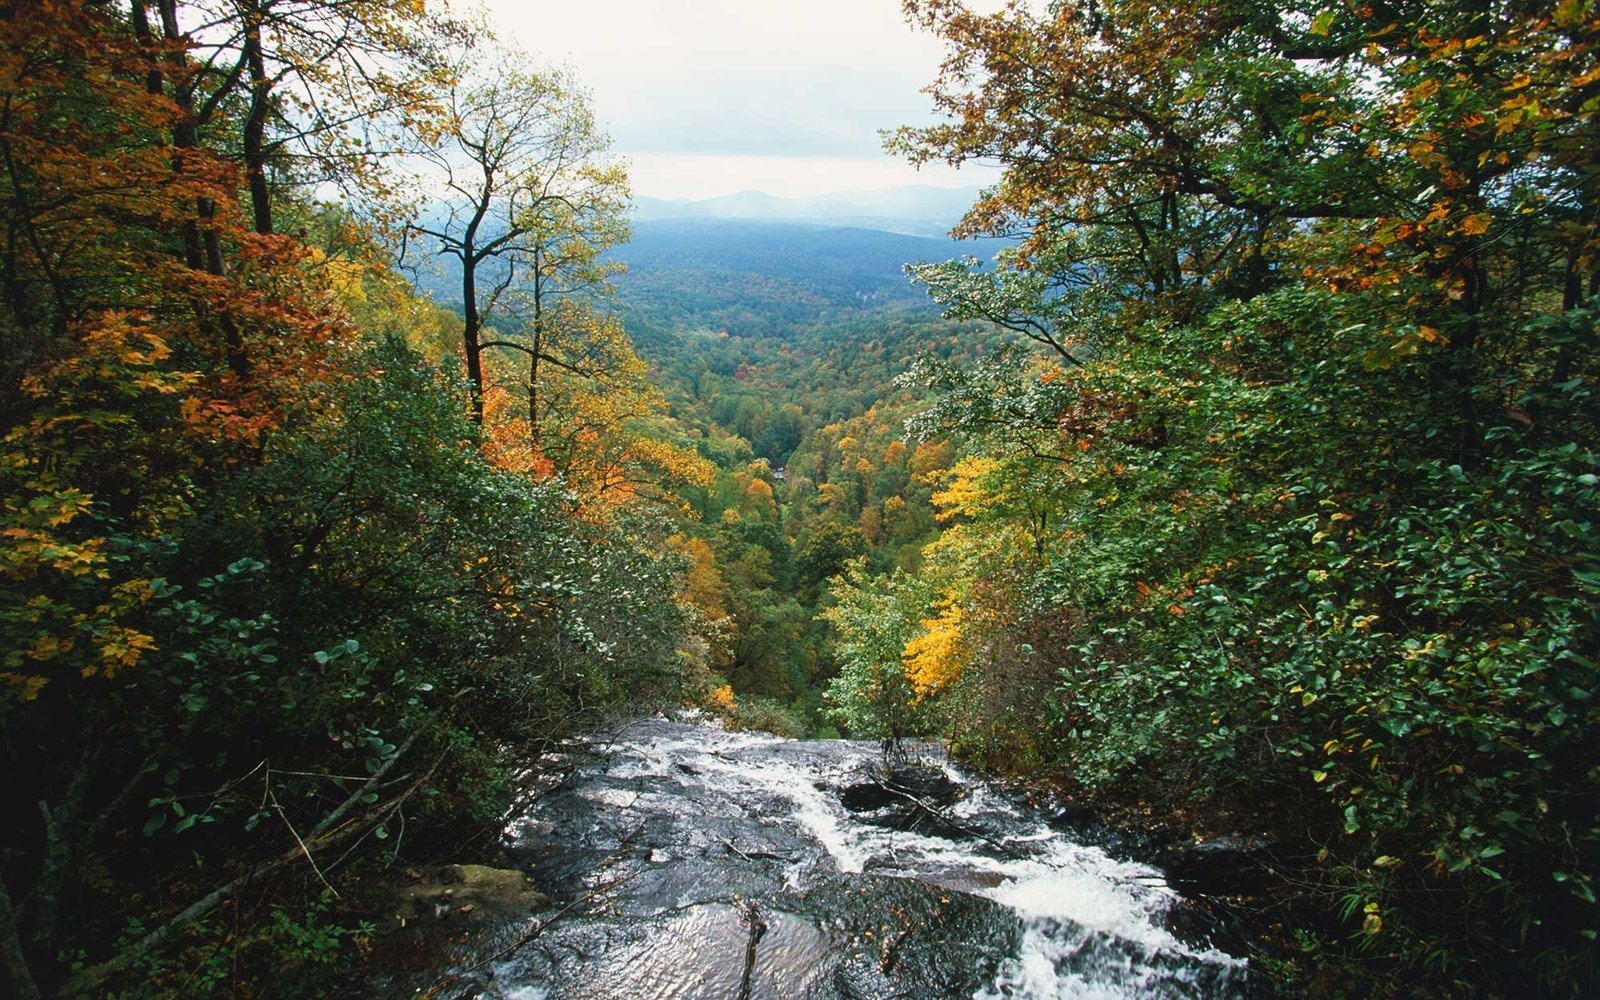 USA, Georgia, Dahlonga, Amicalola State Park, view of Amicalola Falls overlooking Chattahoochee National Forest.